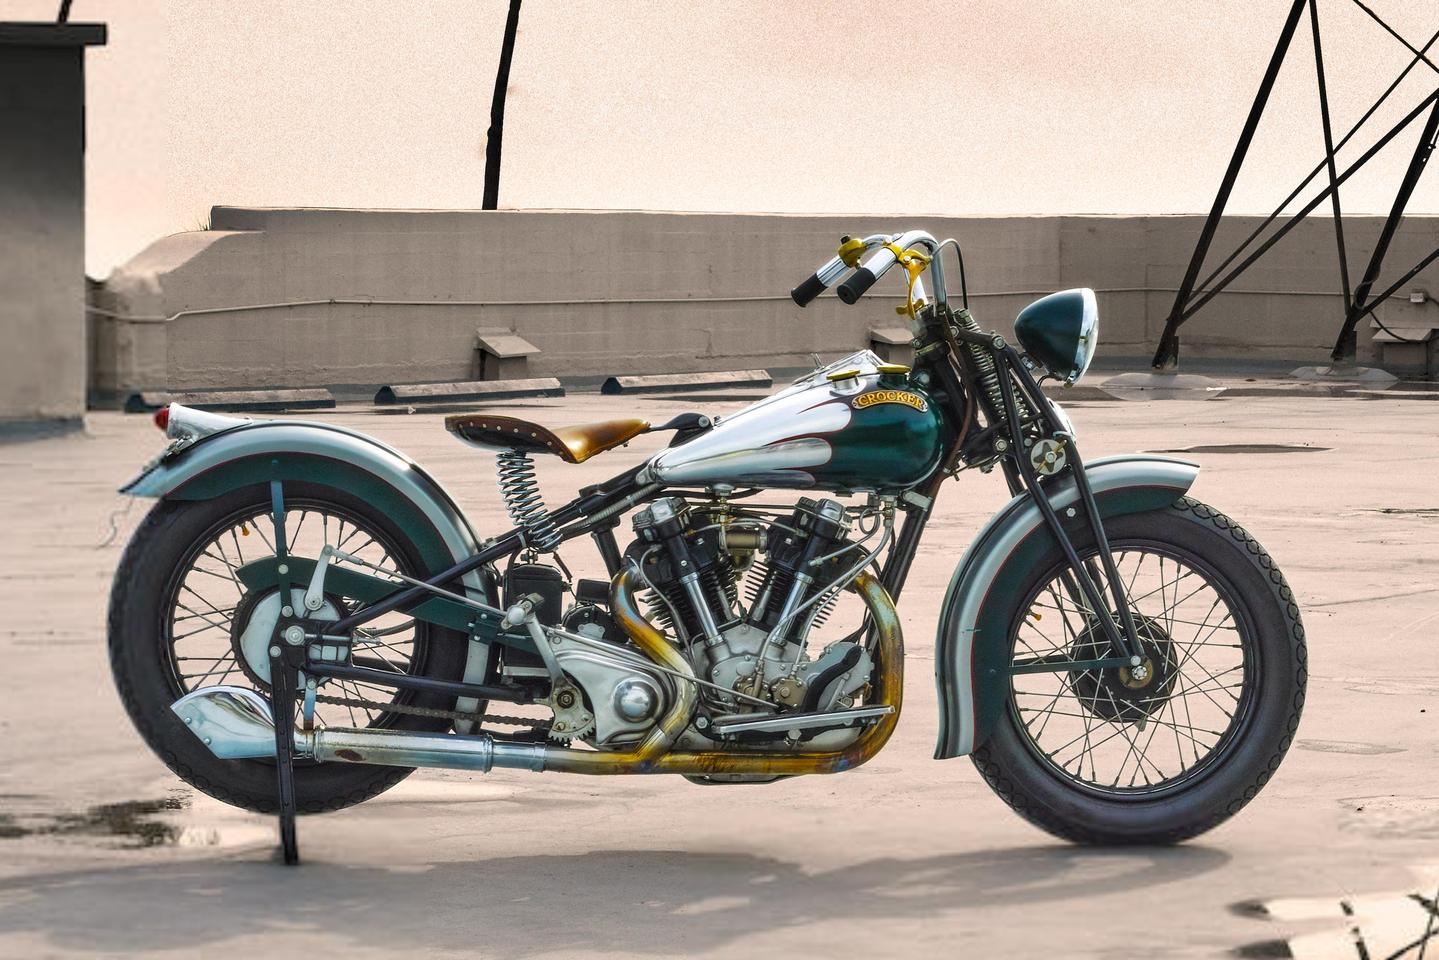 This 1940 Crocker Big Tank V-Twin is likely to become one of the top ten most valuable motorcycles of all time if it sells.